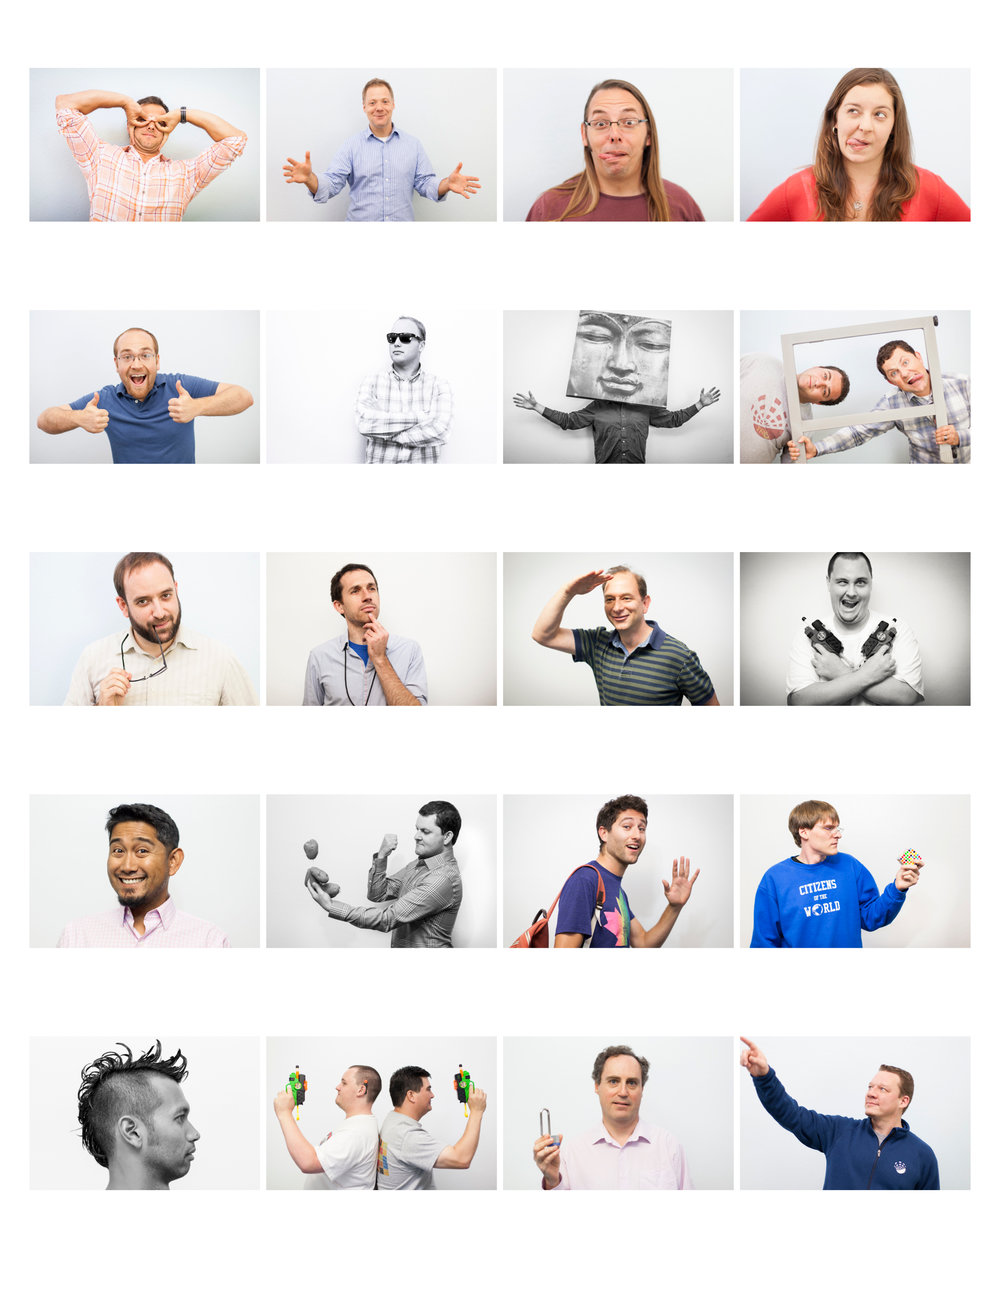 Copy of professional-photography-matt-mcdonald-office-culture-startup-63mph